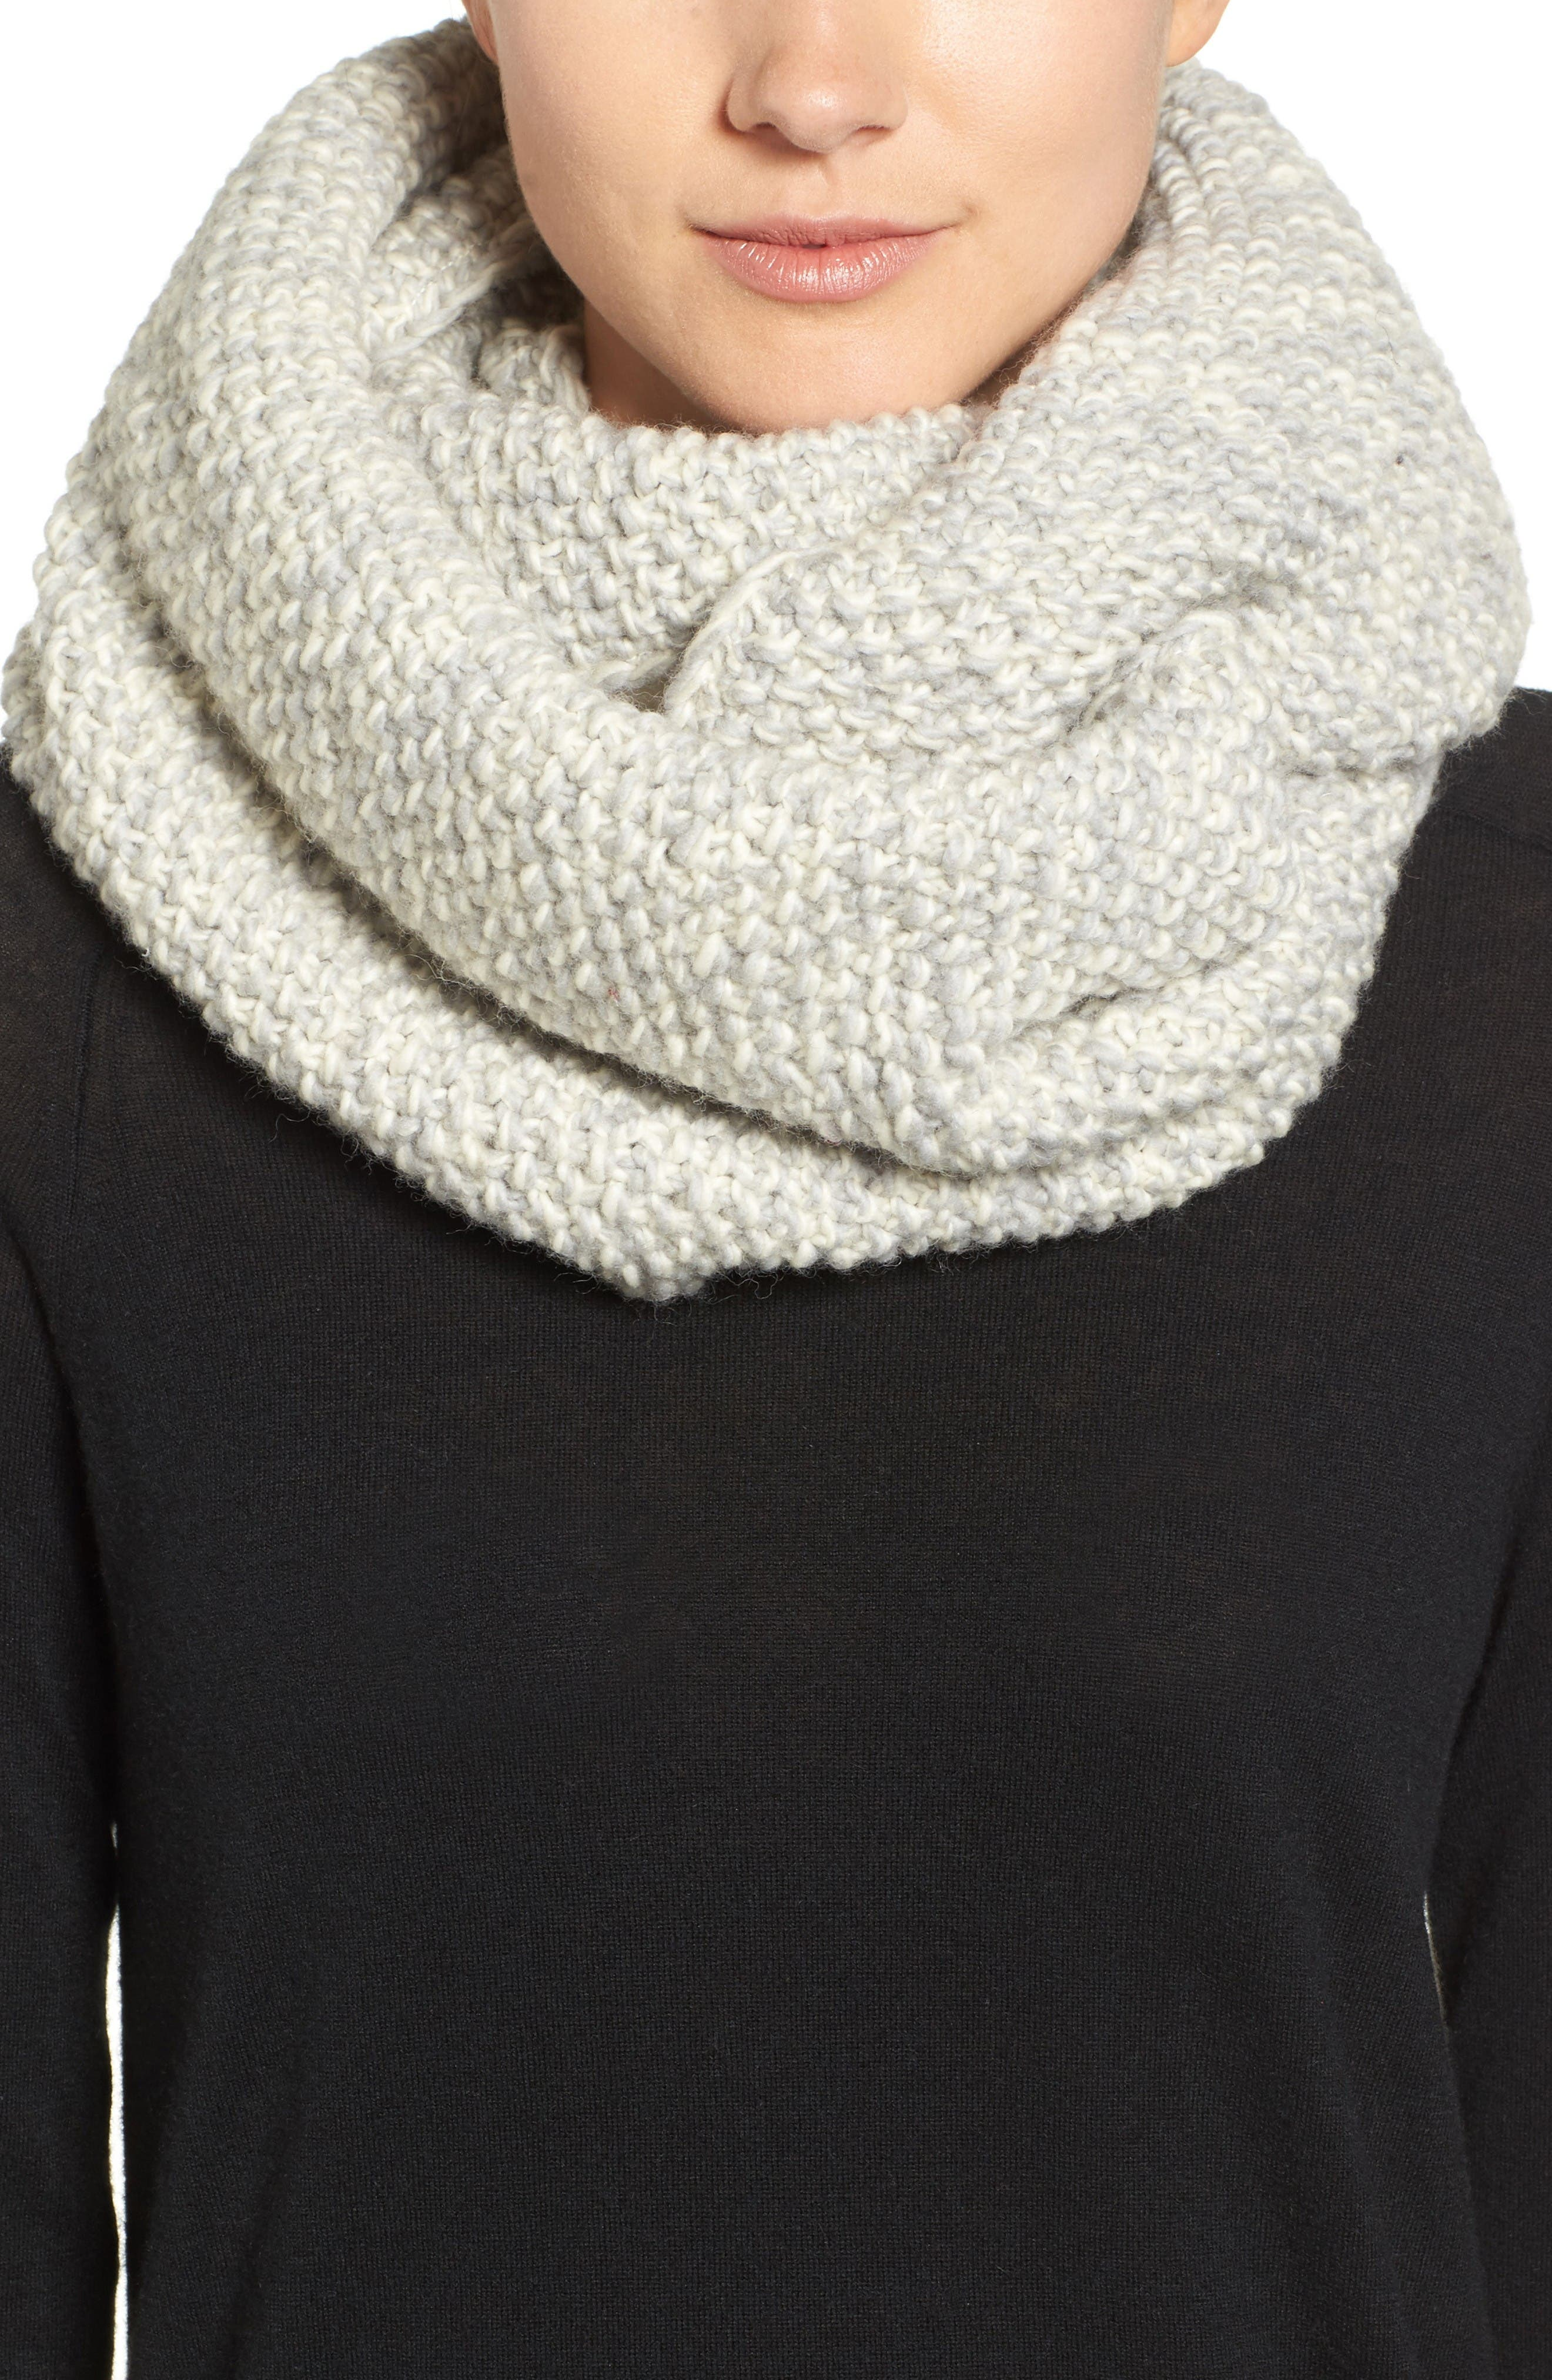 Knit Wool Infinity Scarf,                         Main,                         color, Grey